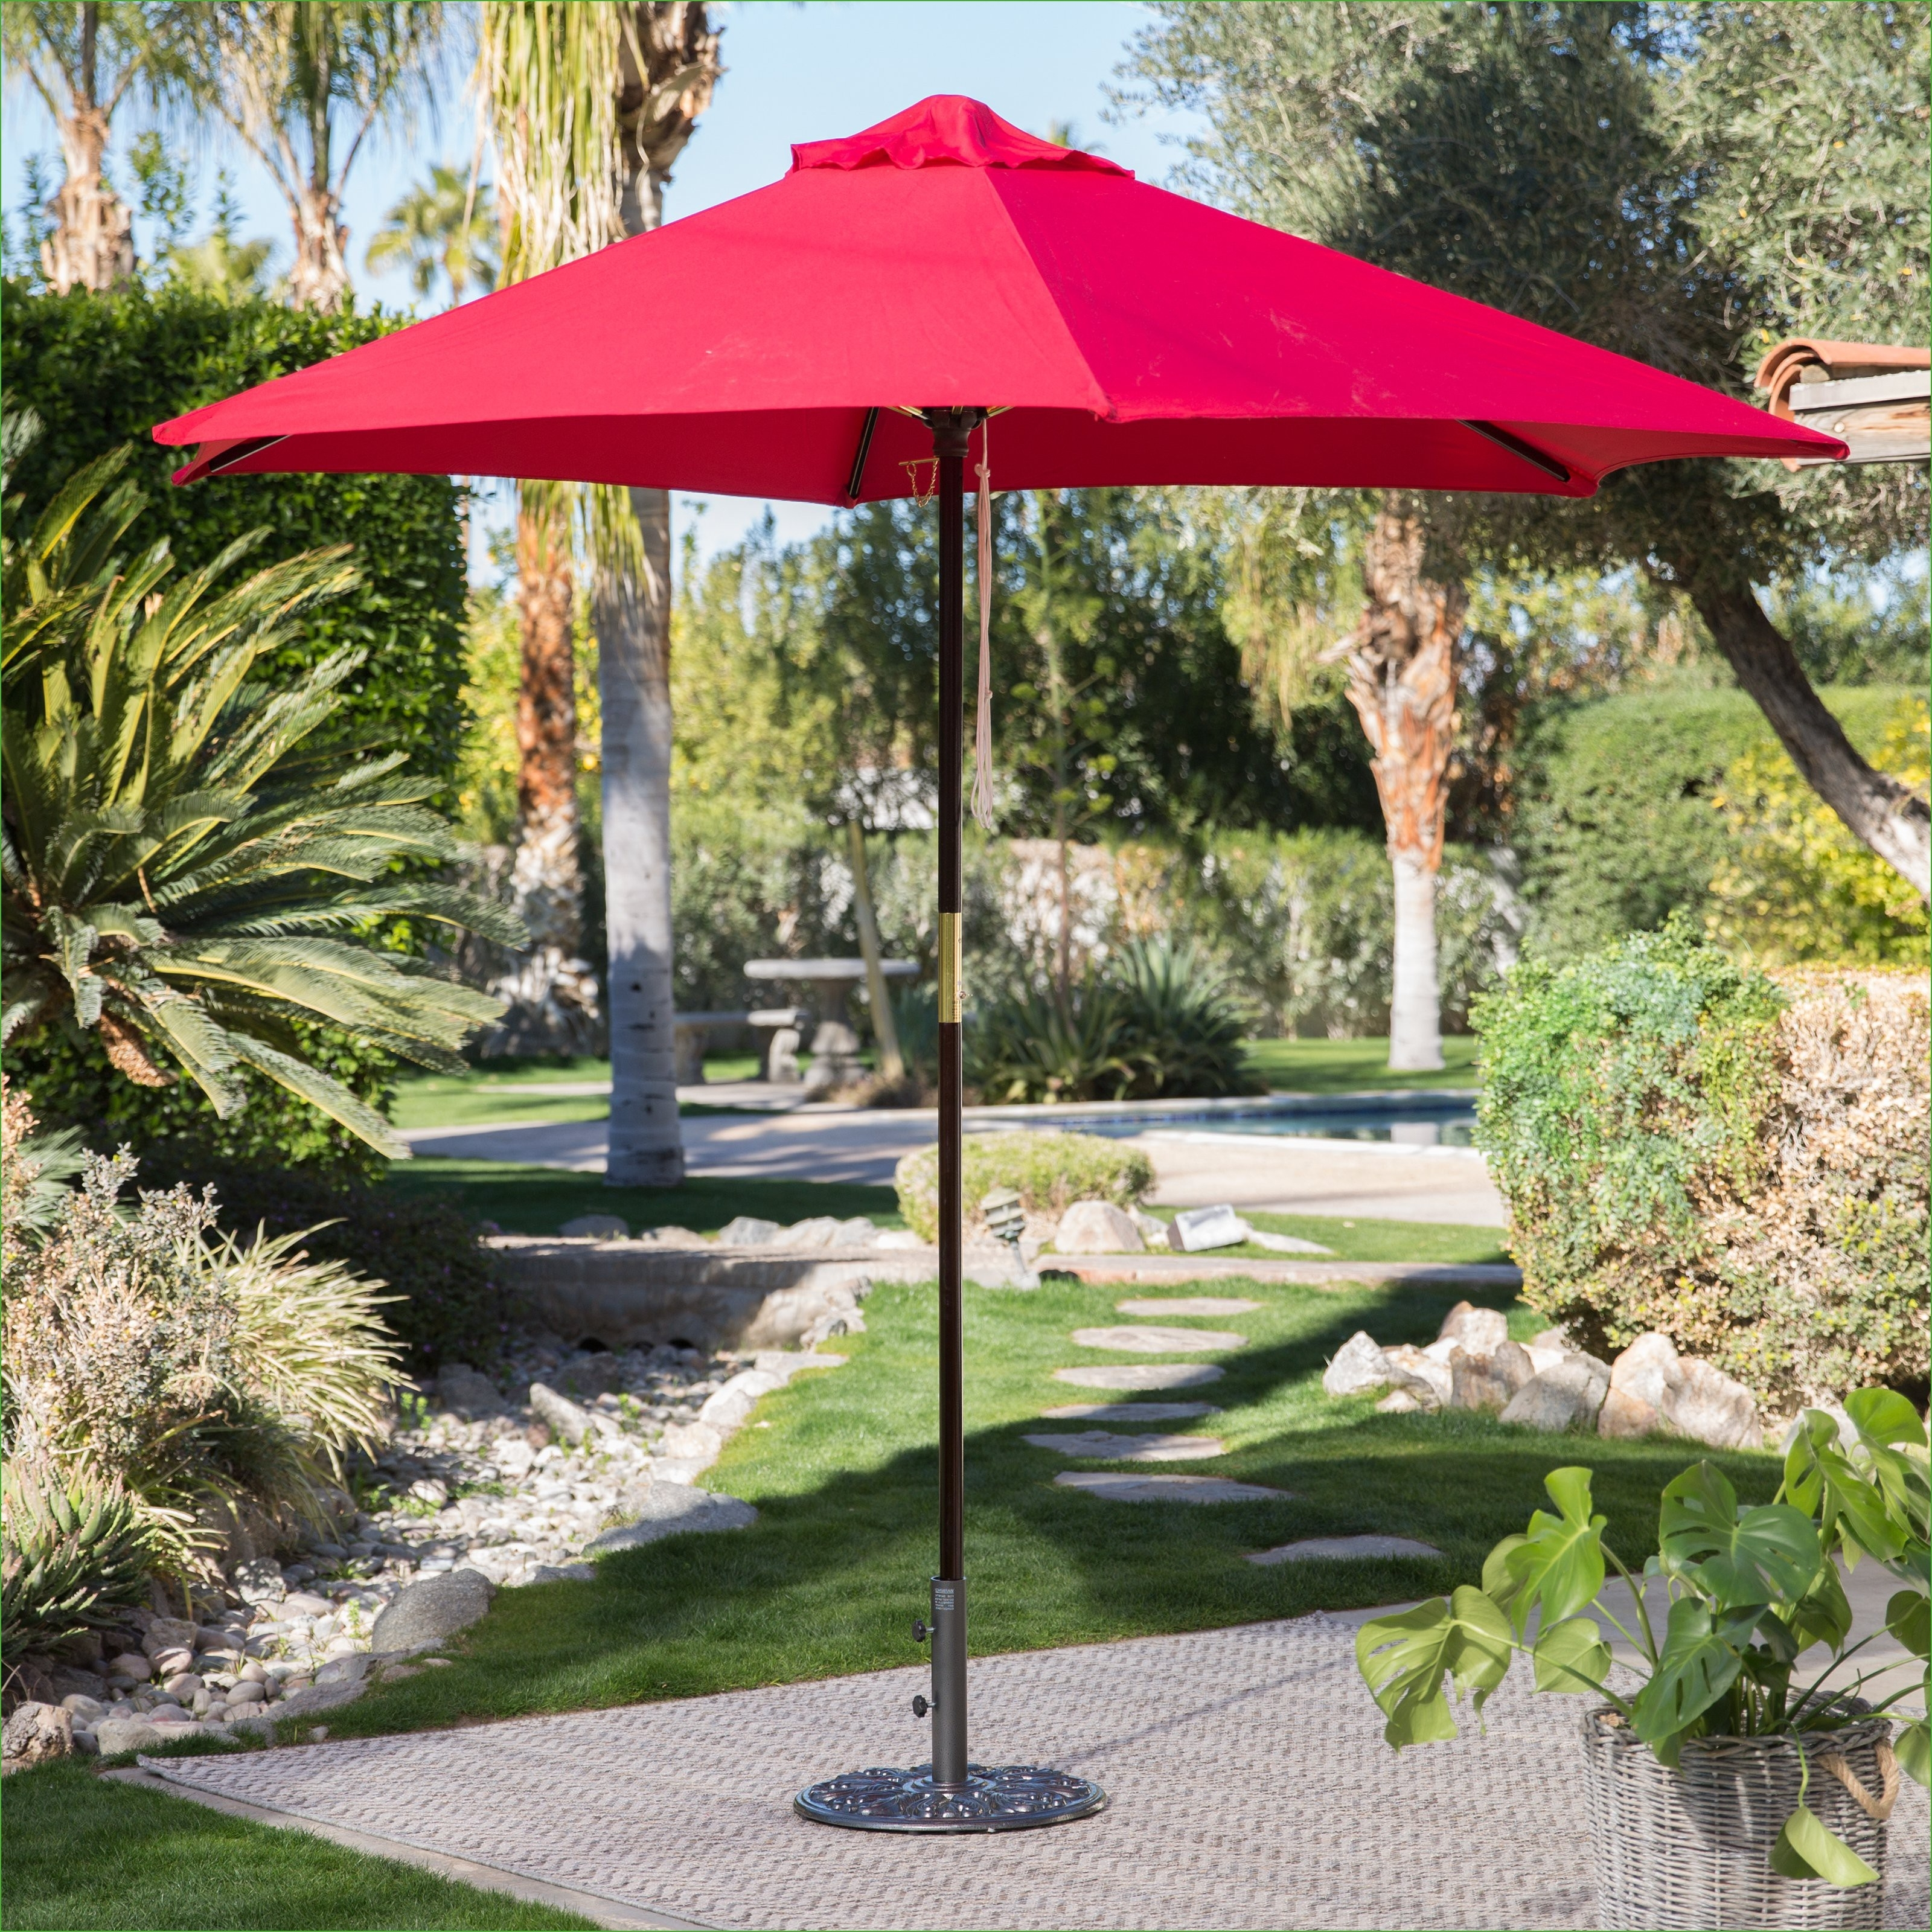 Patio Umbrellas Costco Beautiful Picnic Umbrellas Lovely Outdoor Regarding Famous Patio Umbrellas From Costco (View 10 of 20)